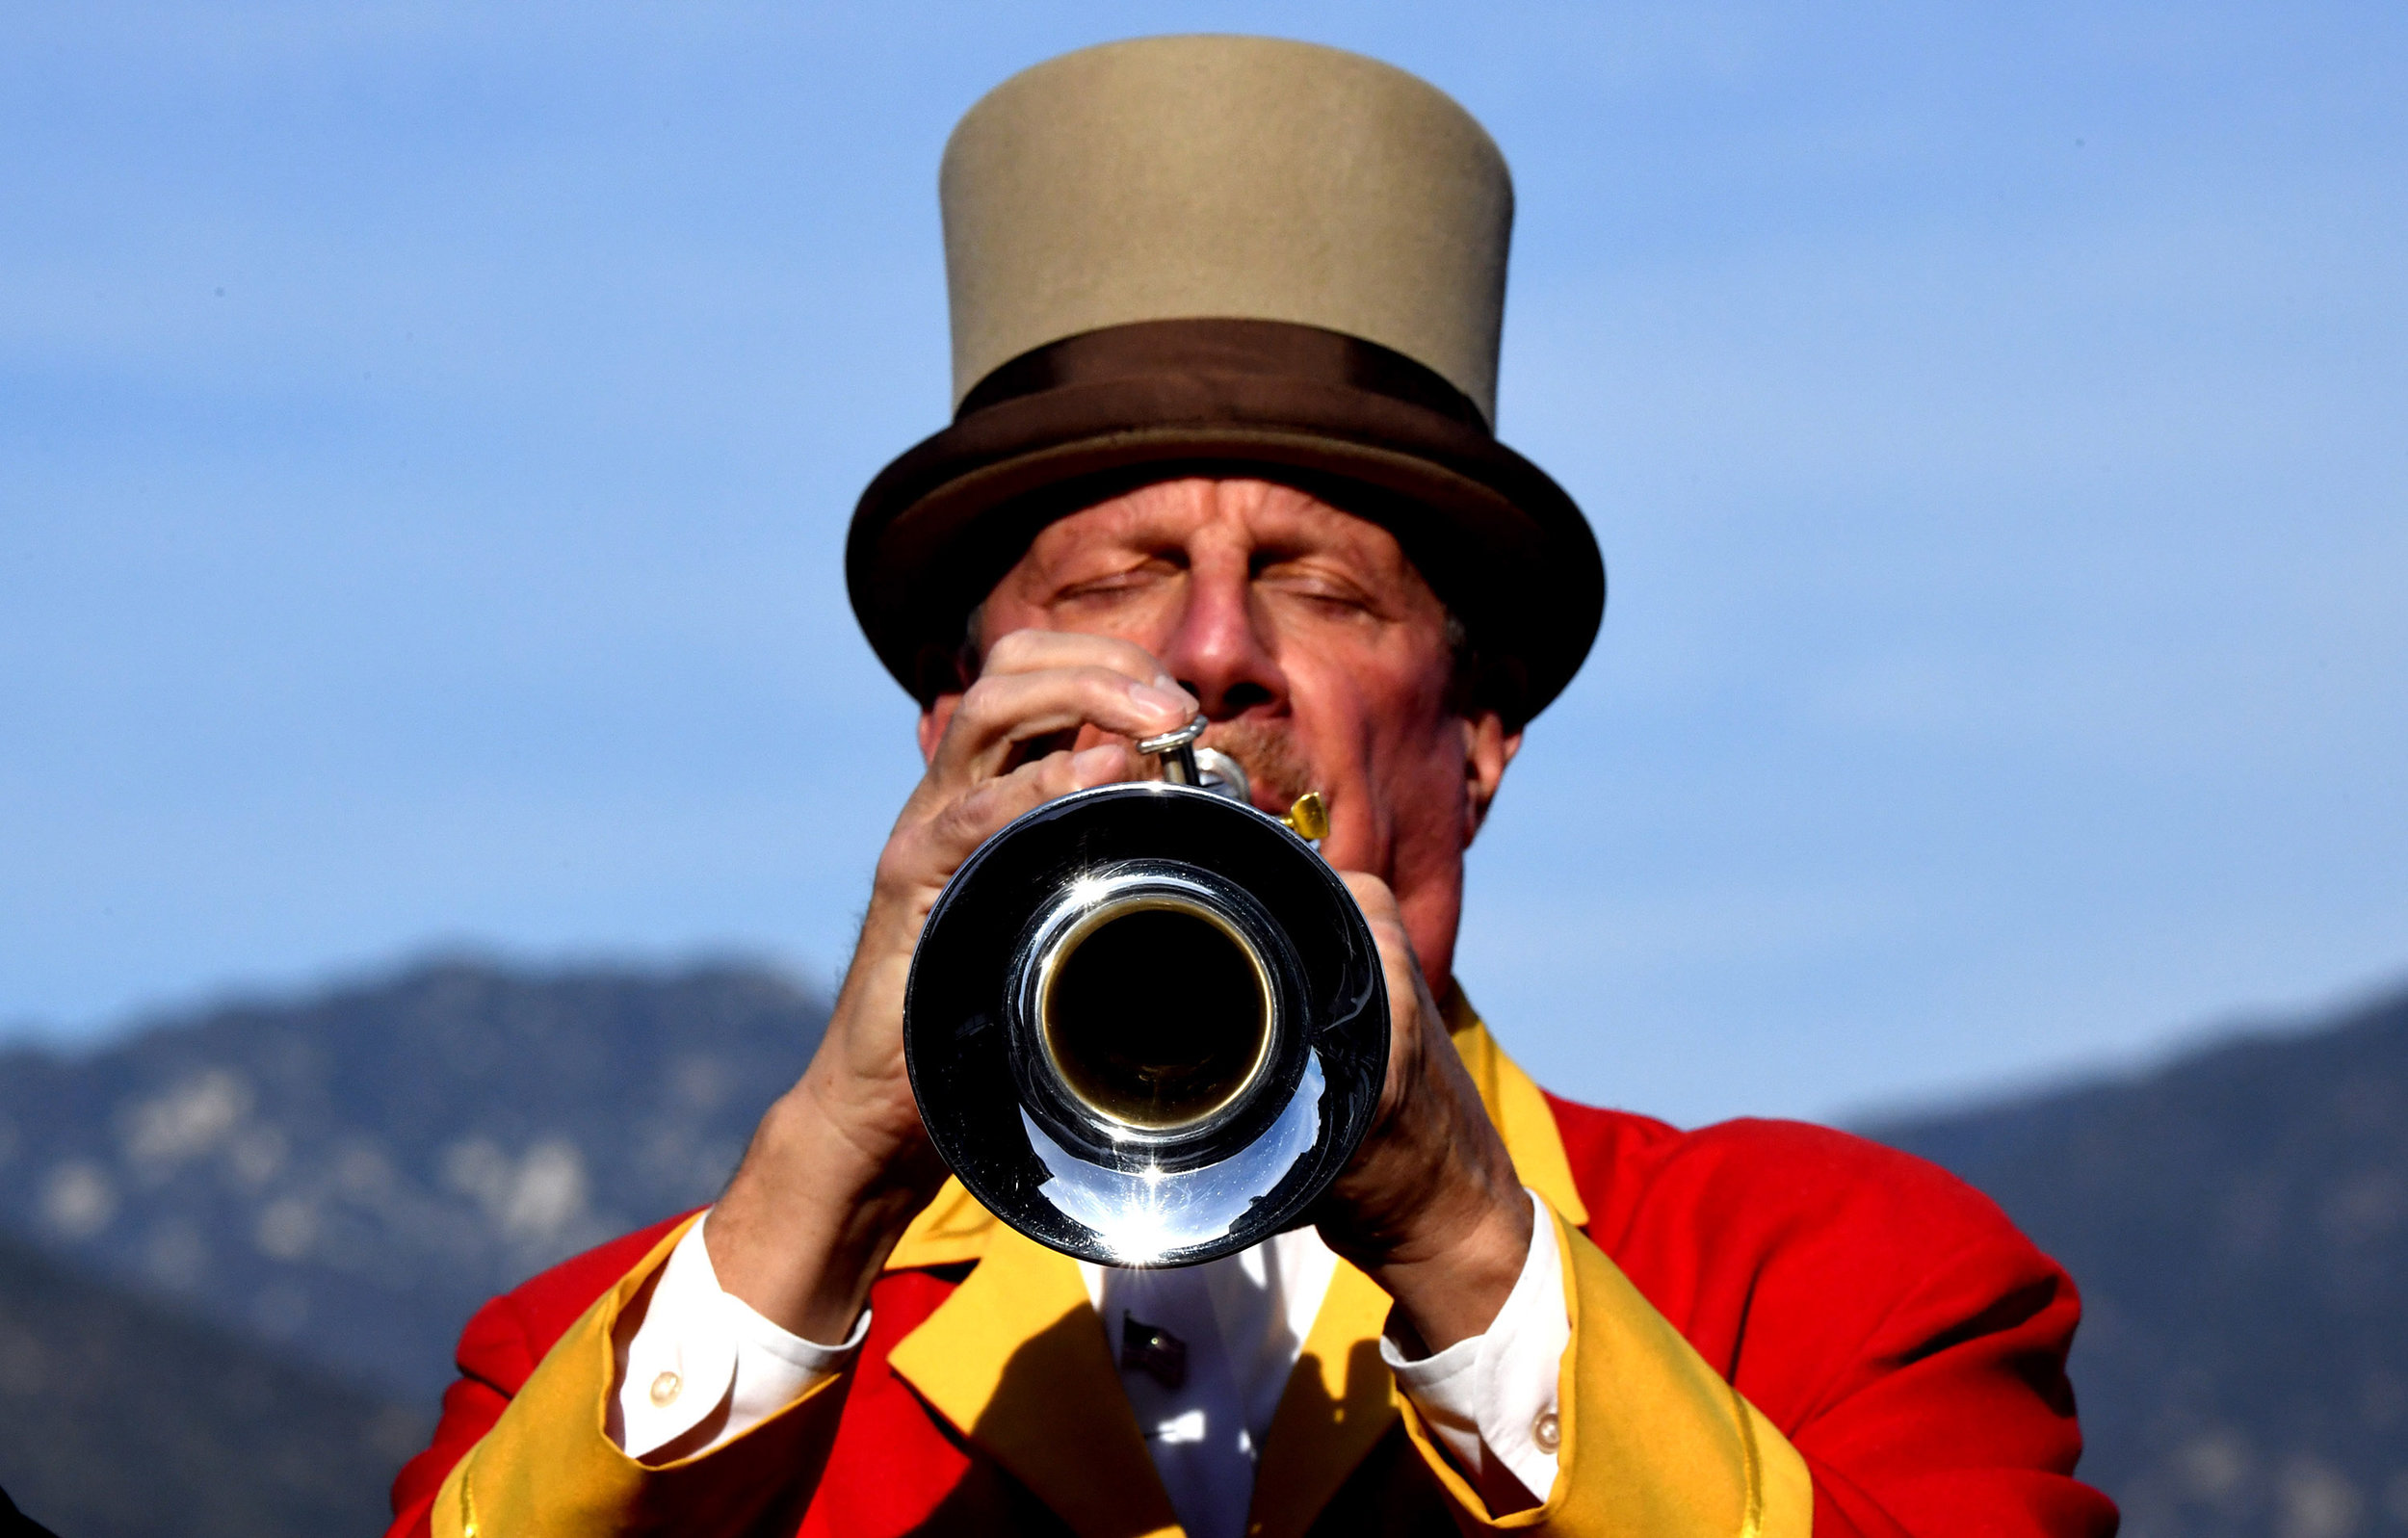 Horn Blower Jay Cohen performs during horse racing at Santa Anita Park on Wednesday, December 26, 2018 in Arcadia, California.